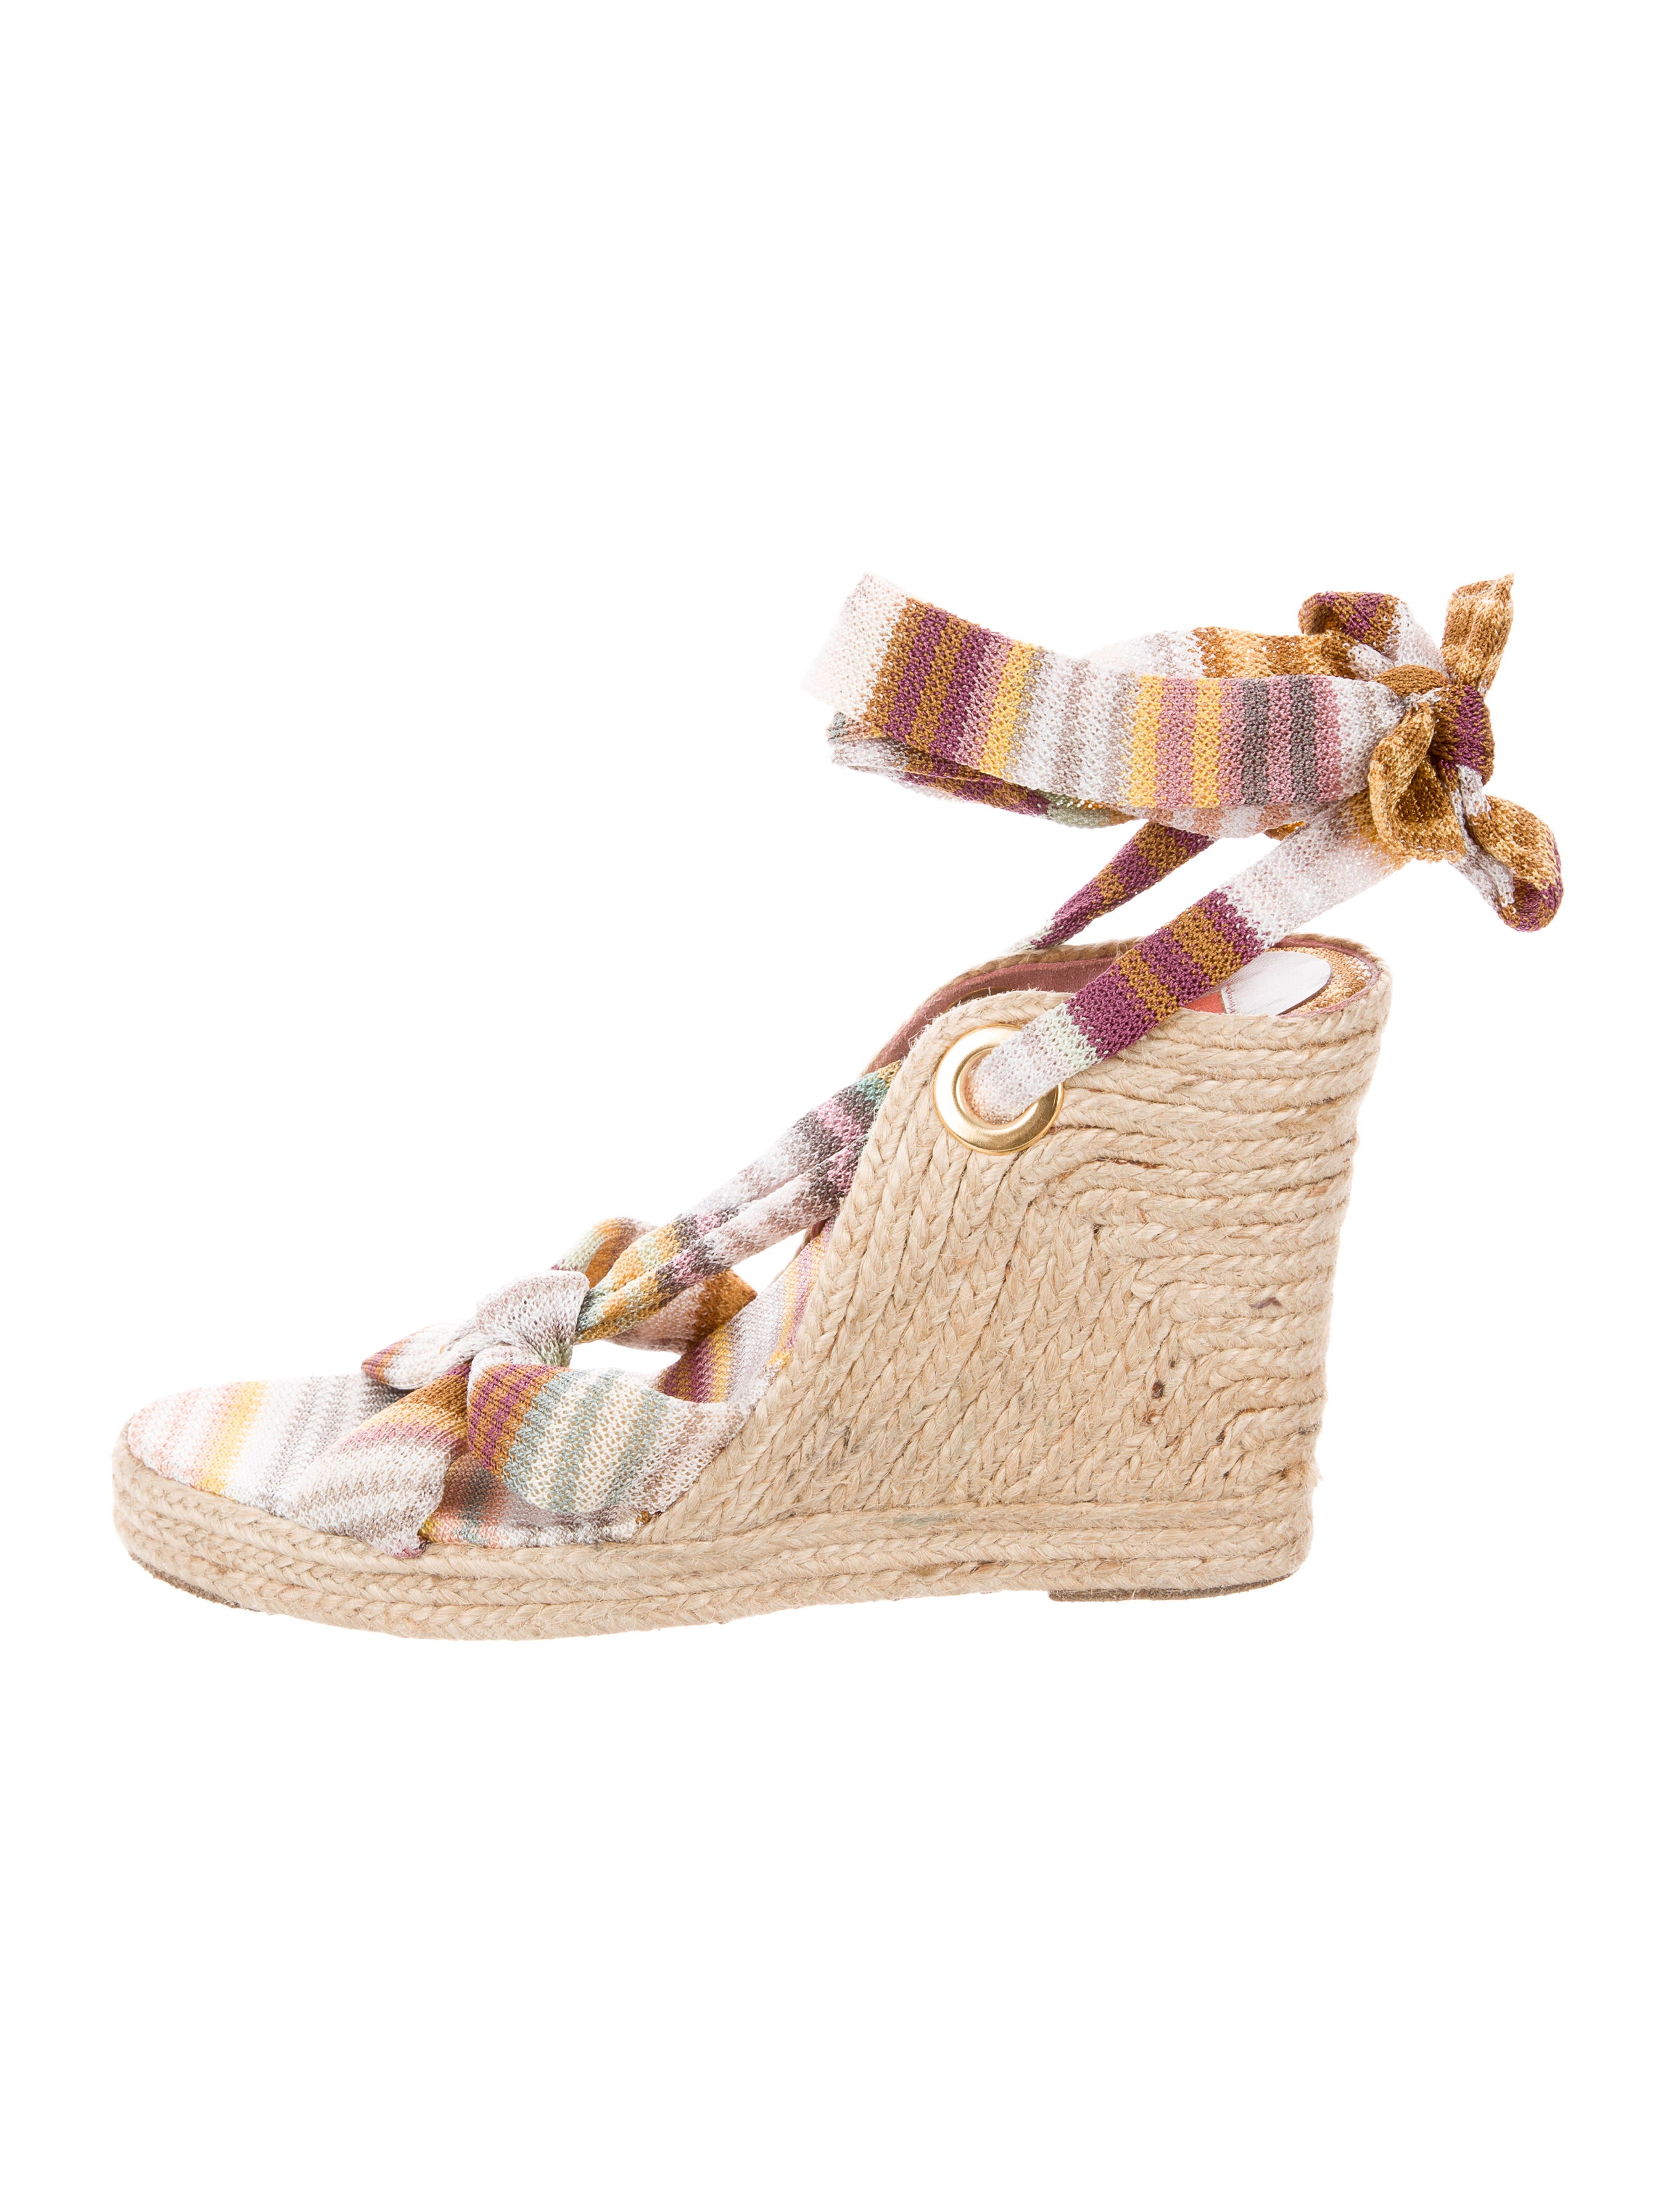 outlet finishline Missoni Platform Espadrille Wedges collections sale online 2014 new cheap price 2015 sale online fake sale online Dhddu7